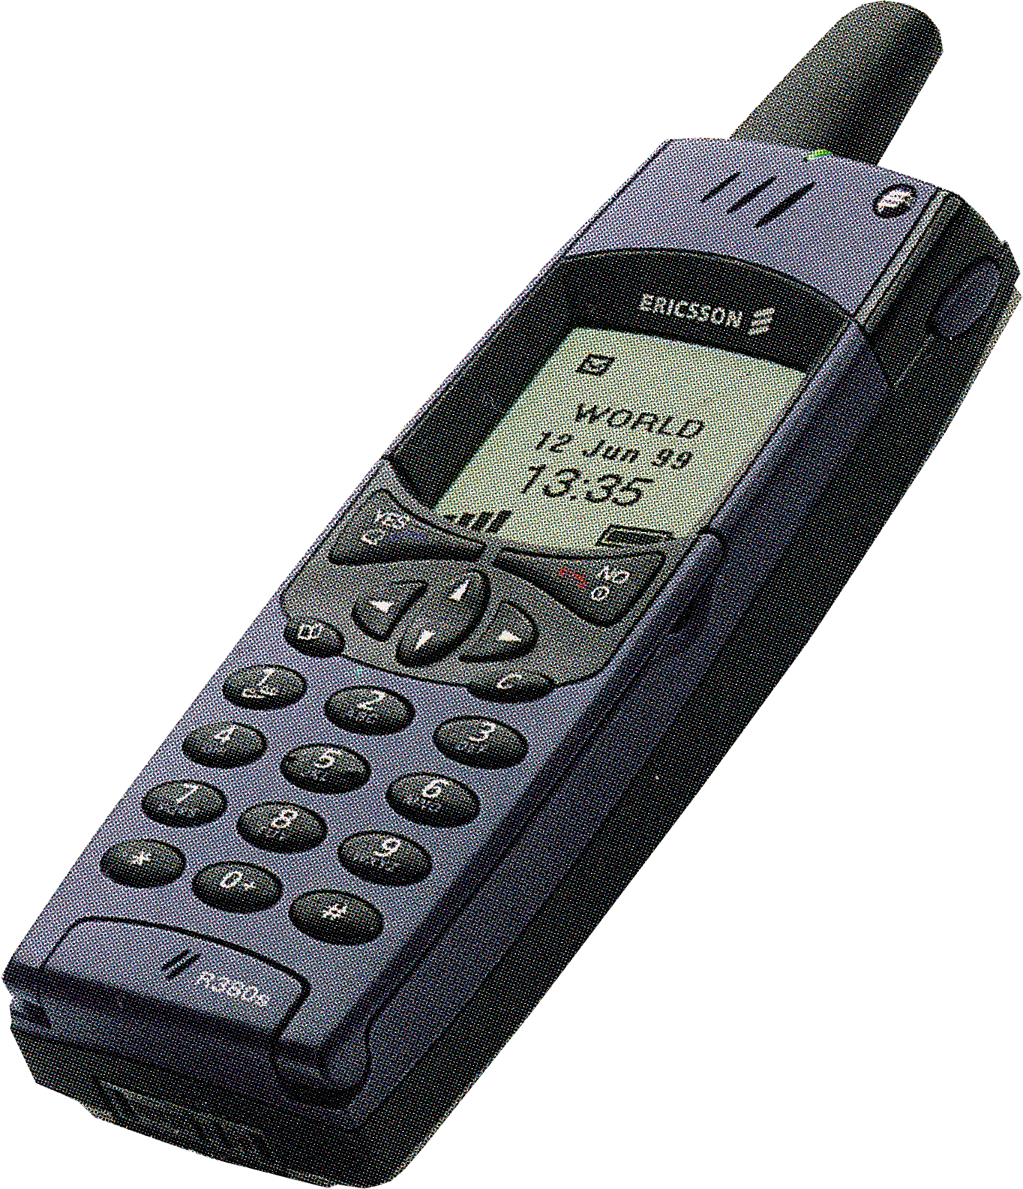 old-mobile-phones-5.png